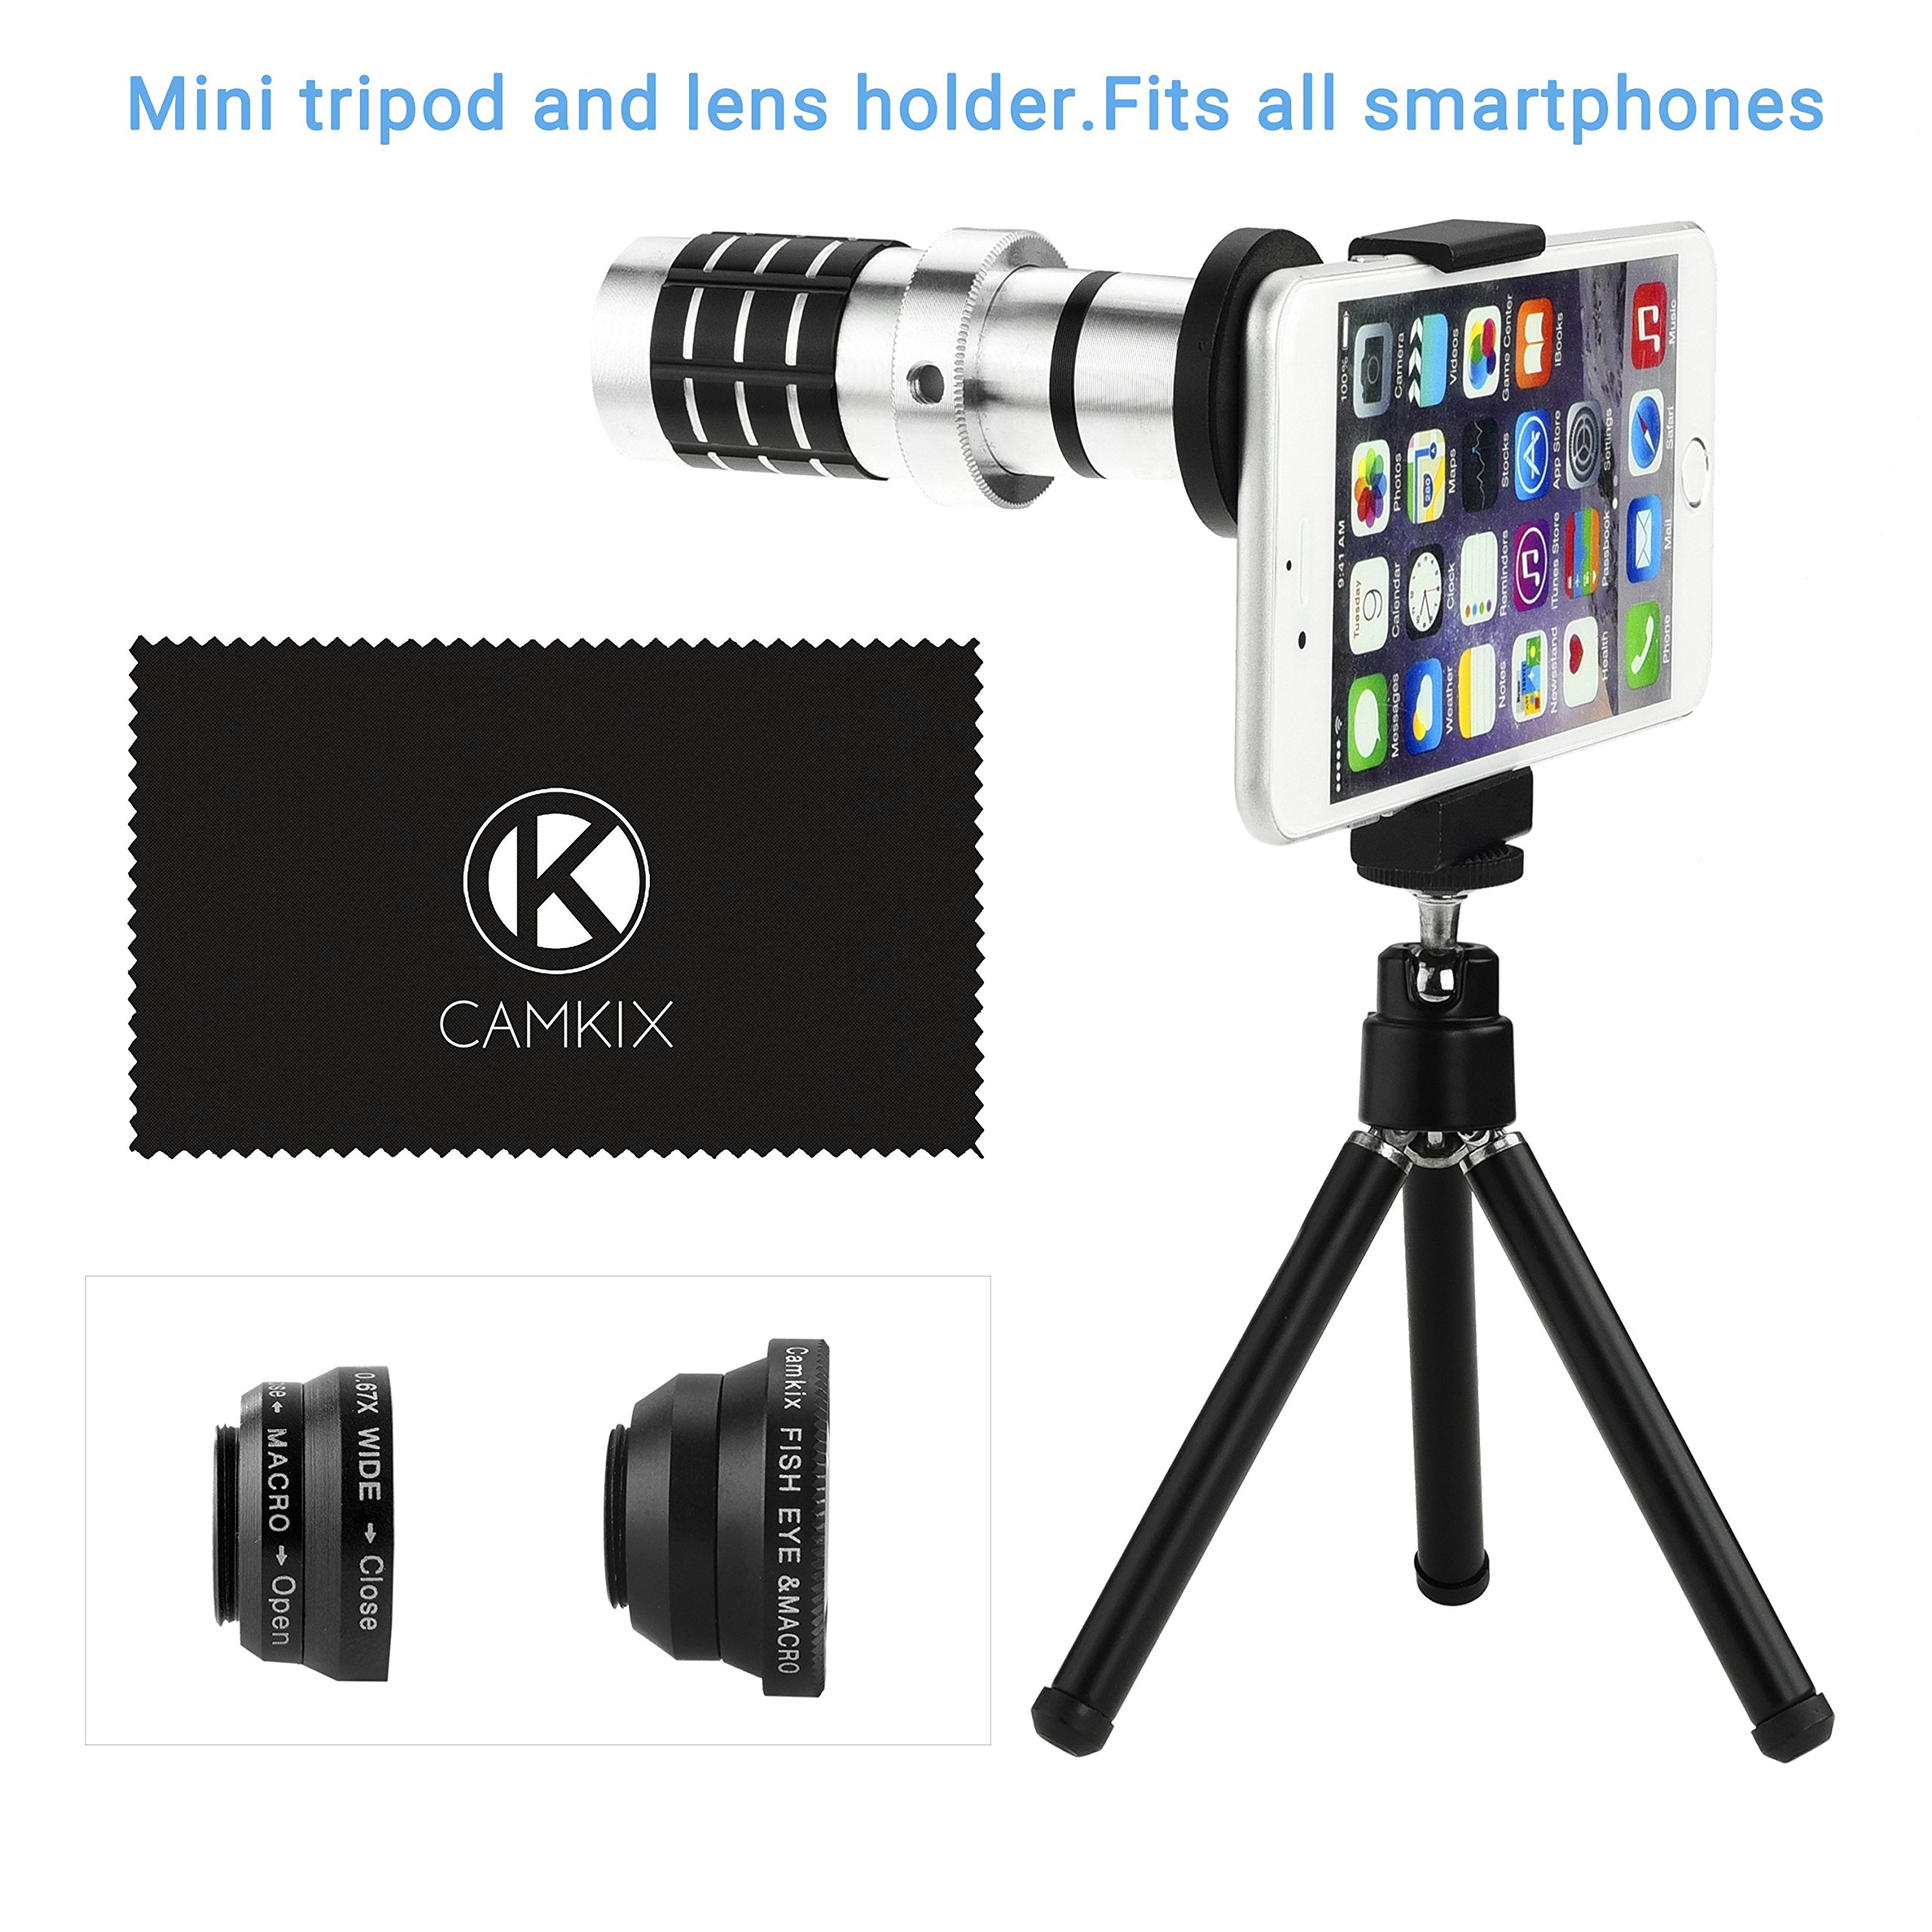 Eco-Fused Universal Smart Phone Camera Lens Kit including 12x Telephoto Manual Focus Lens / Fish Eye Lens / 2 in 1 Macro and Wide Angle Lens / Tripod / Lens and Phone Holder / Fits Most Phones by CamKix